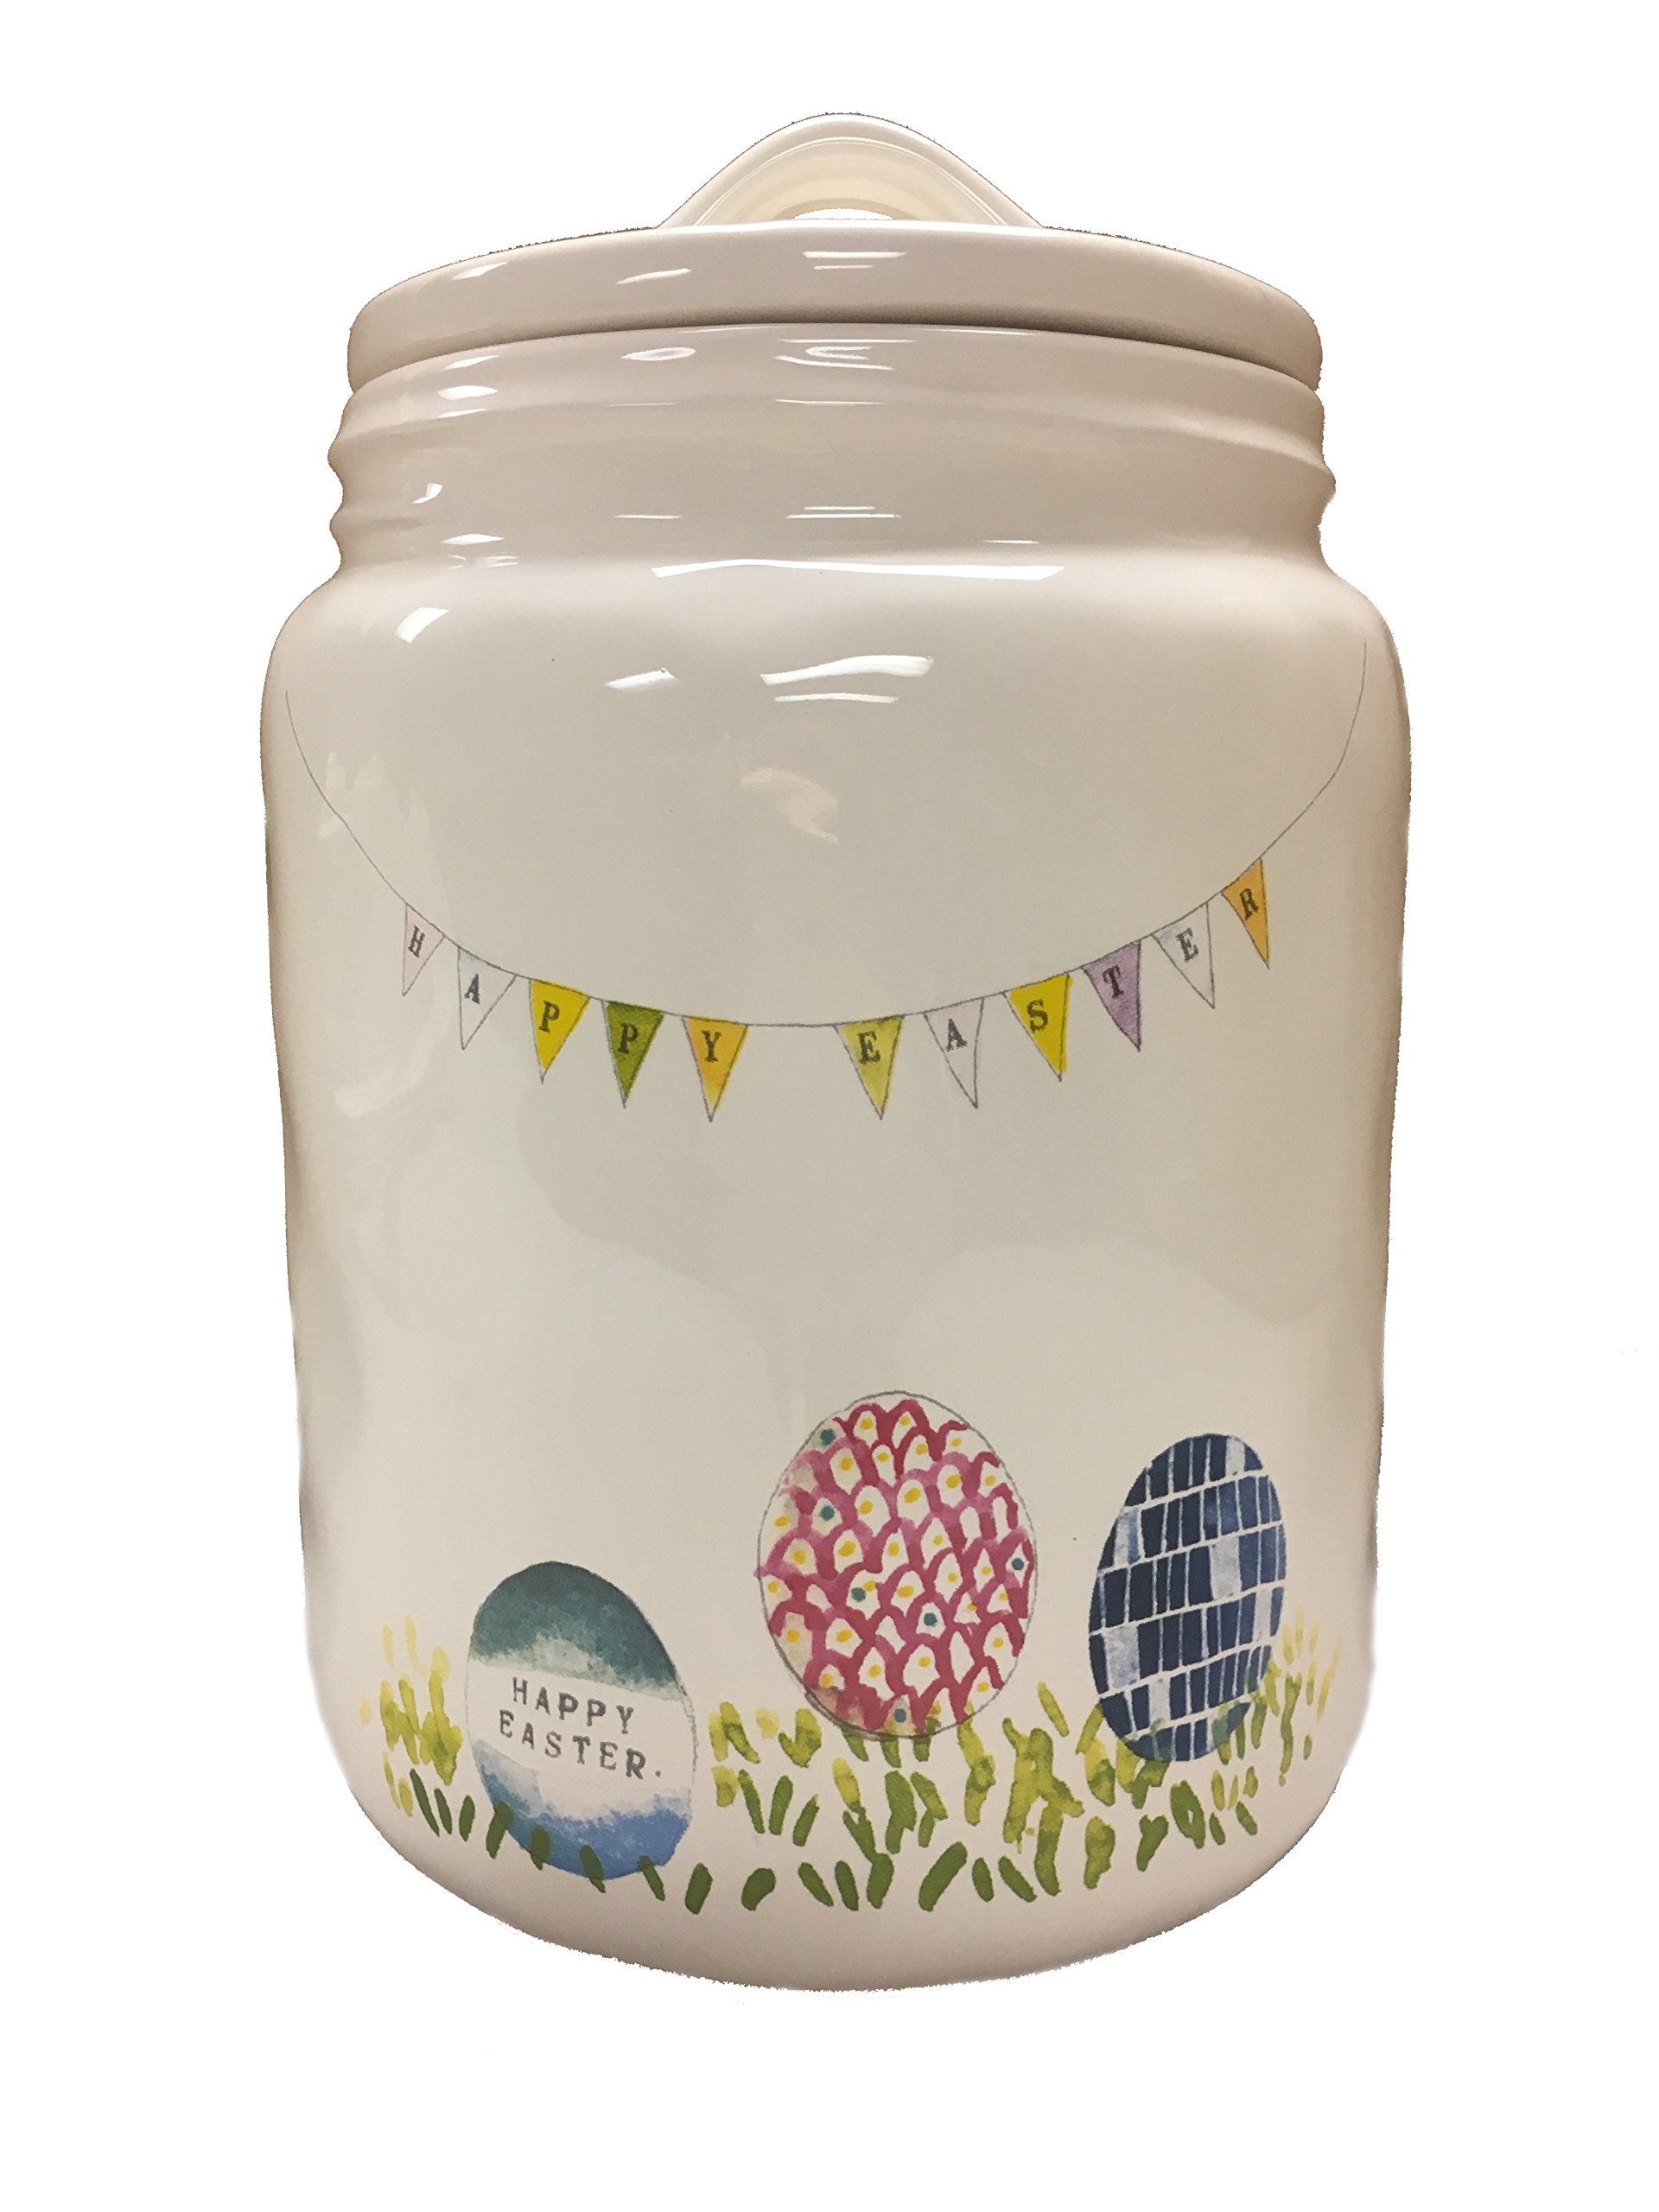 Beautiful Rae Dunn by Magenta Easter Ceramic Canister/Cookie Jar